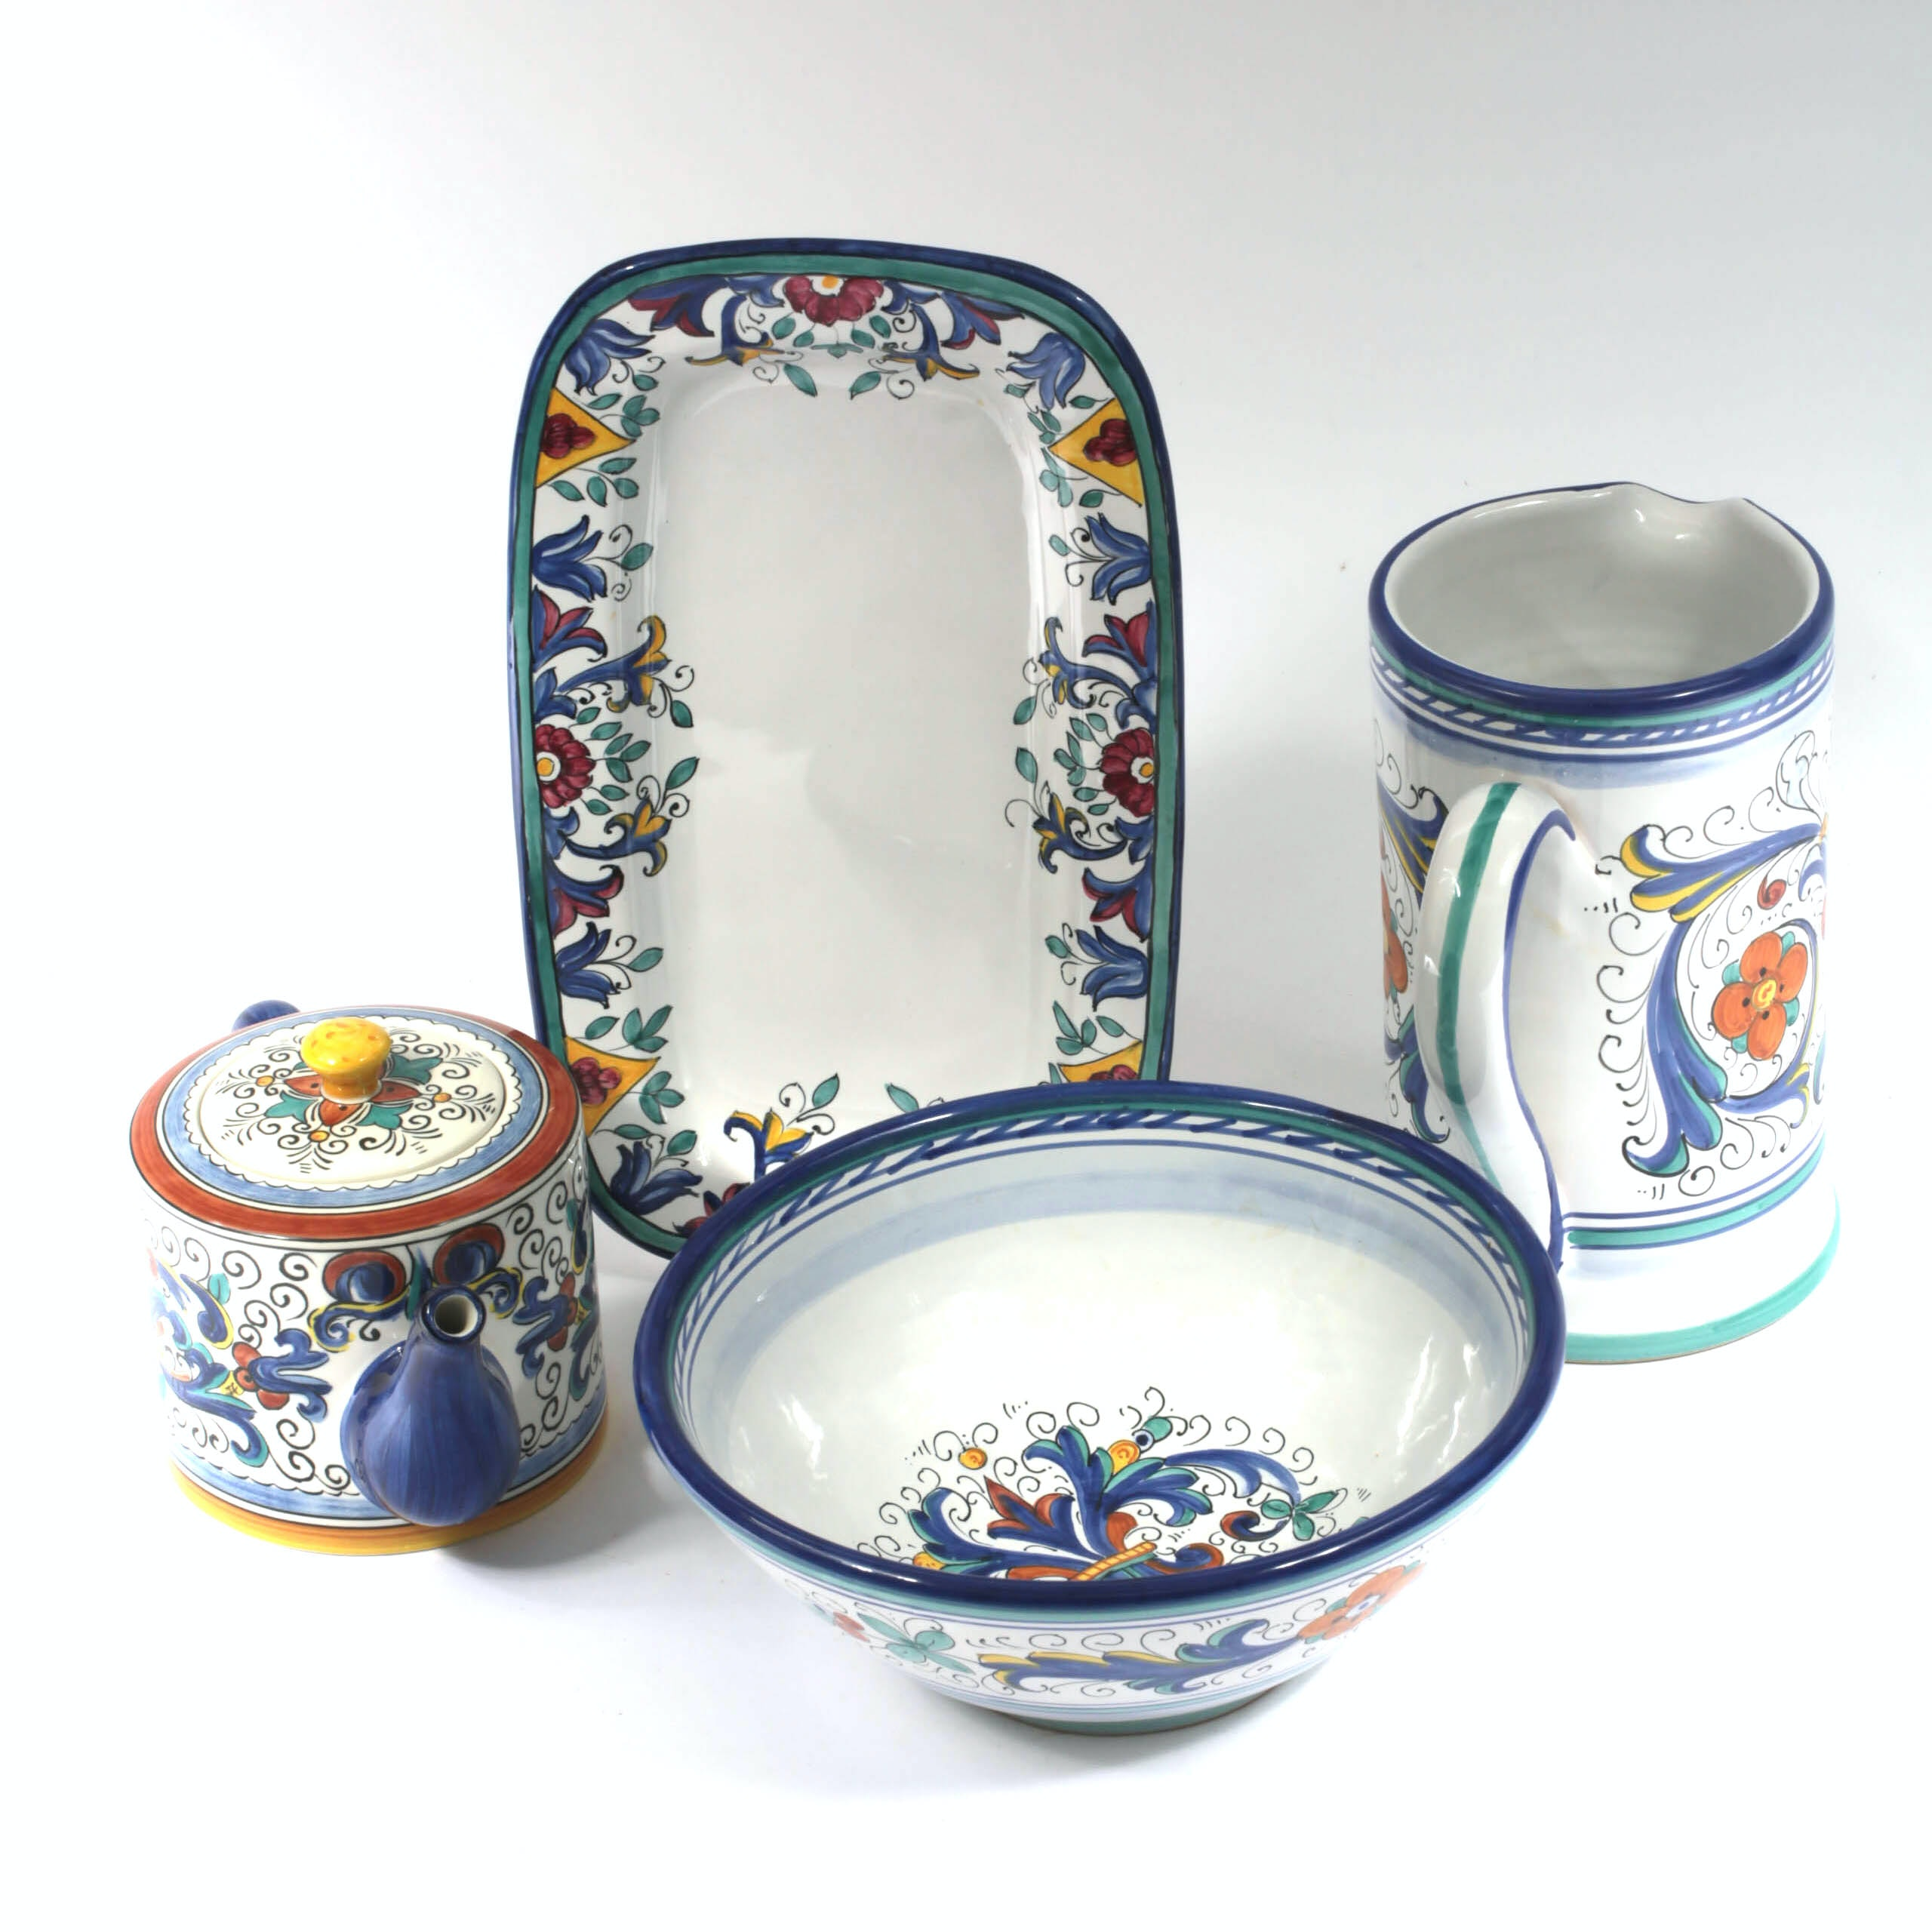 Hand-Painted Italian and Portuguese Tableware Including Deruta ...  sc 1 st  EBTH.com & Hand-Painted Italian and Portuguese Tableware Including Deruta : EBTH